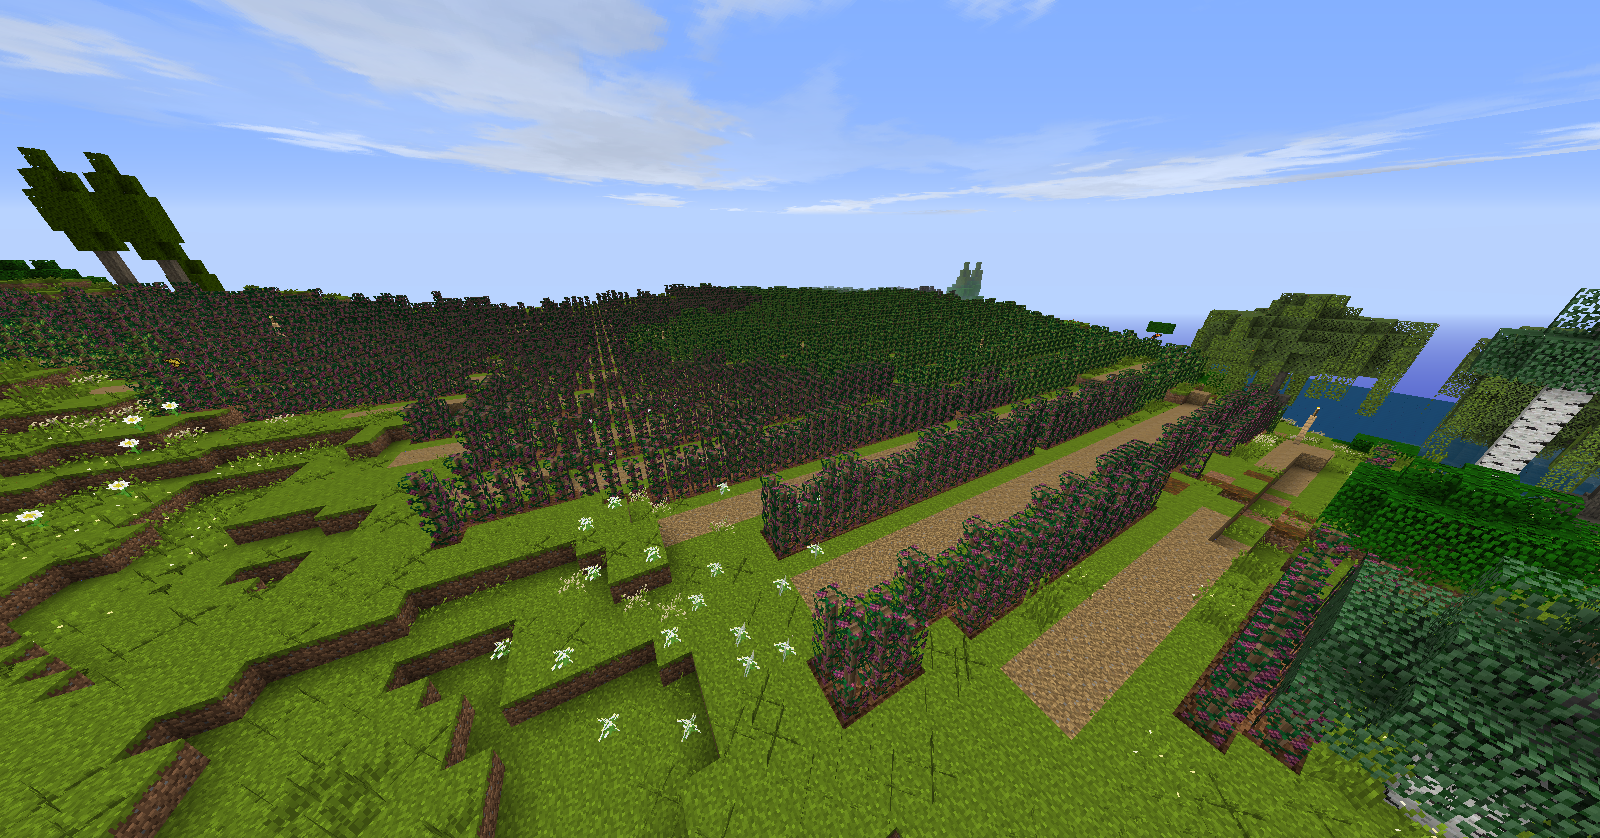 Grapes | The Lord of the Rings Minecraft Mod Wiki | FANDOM